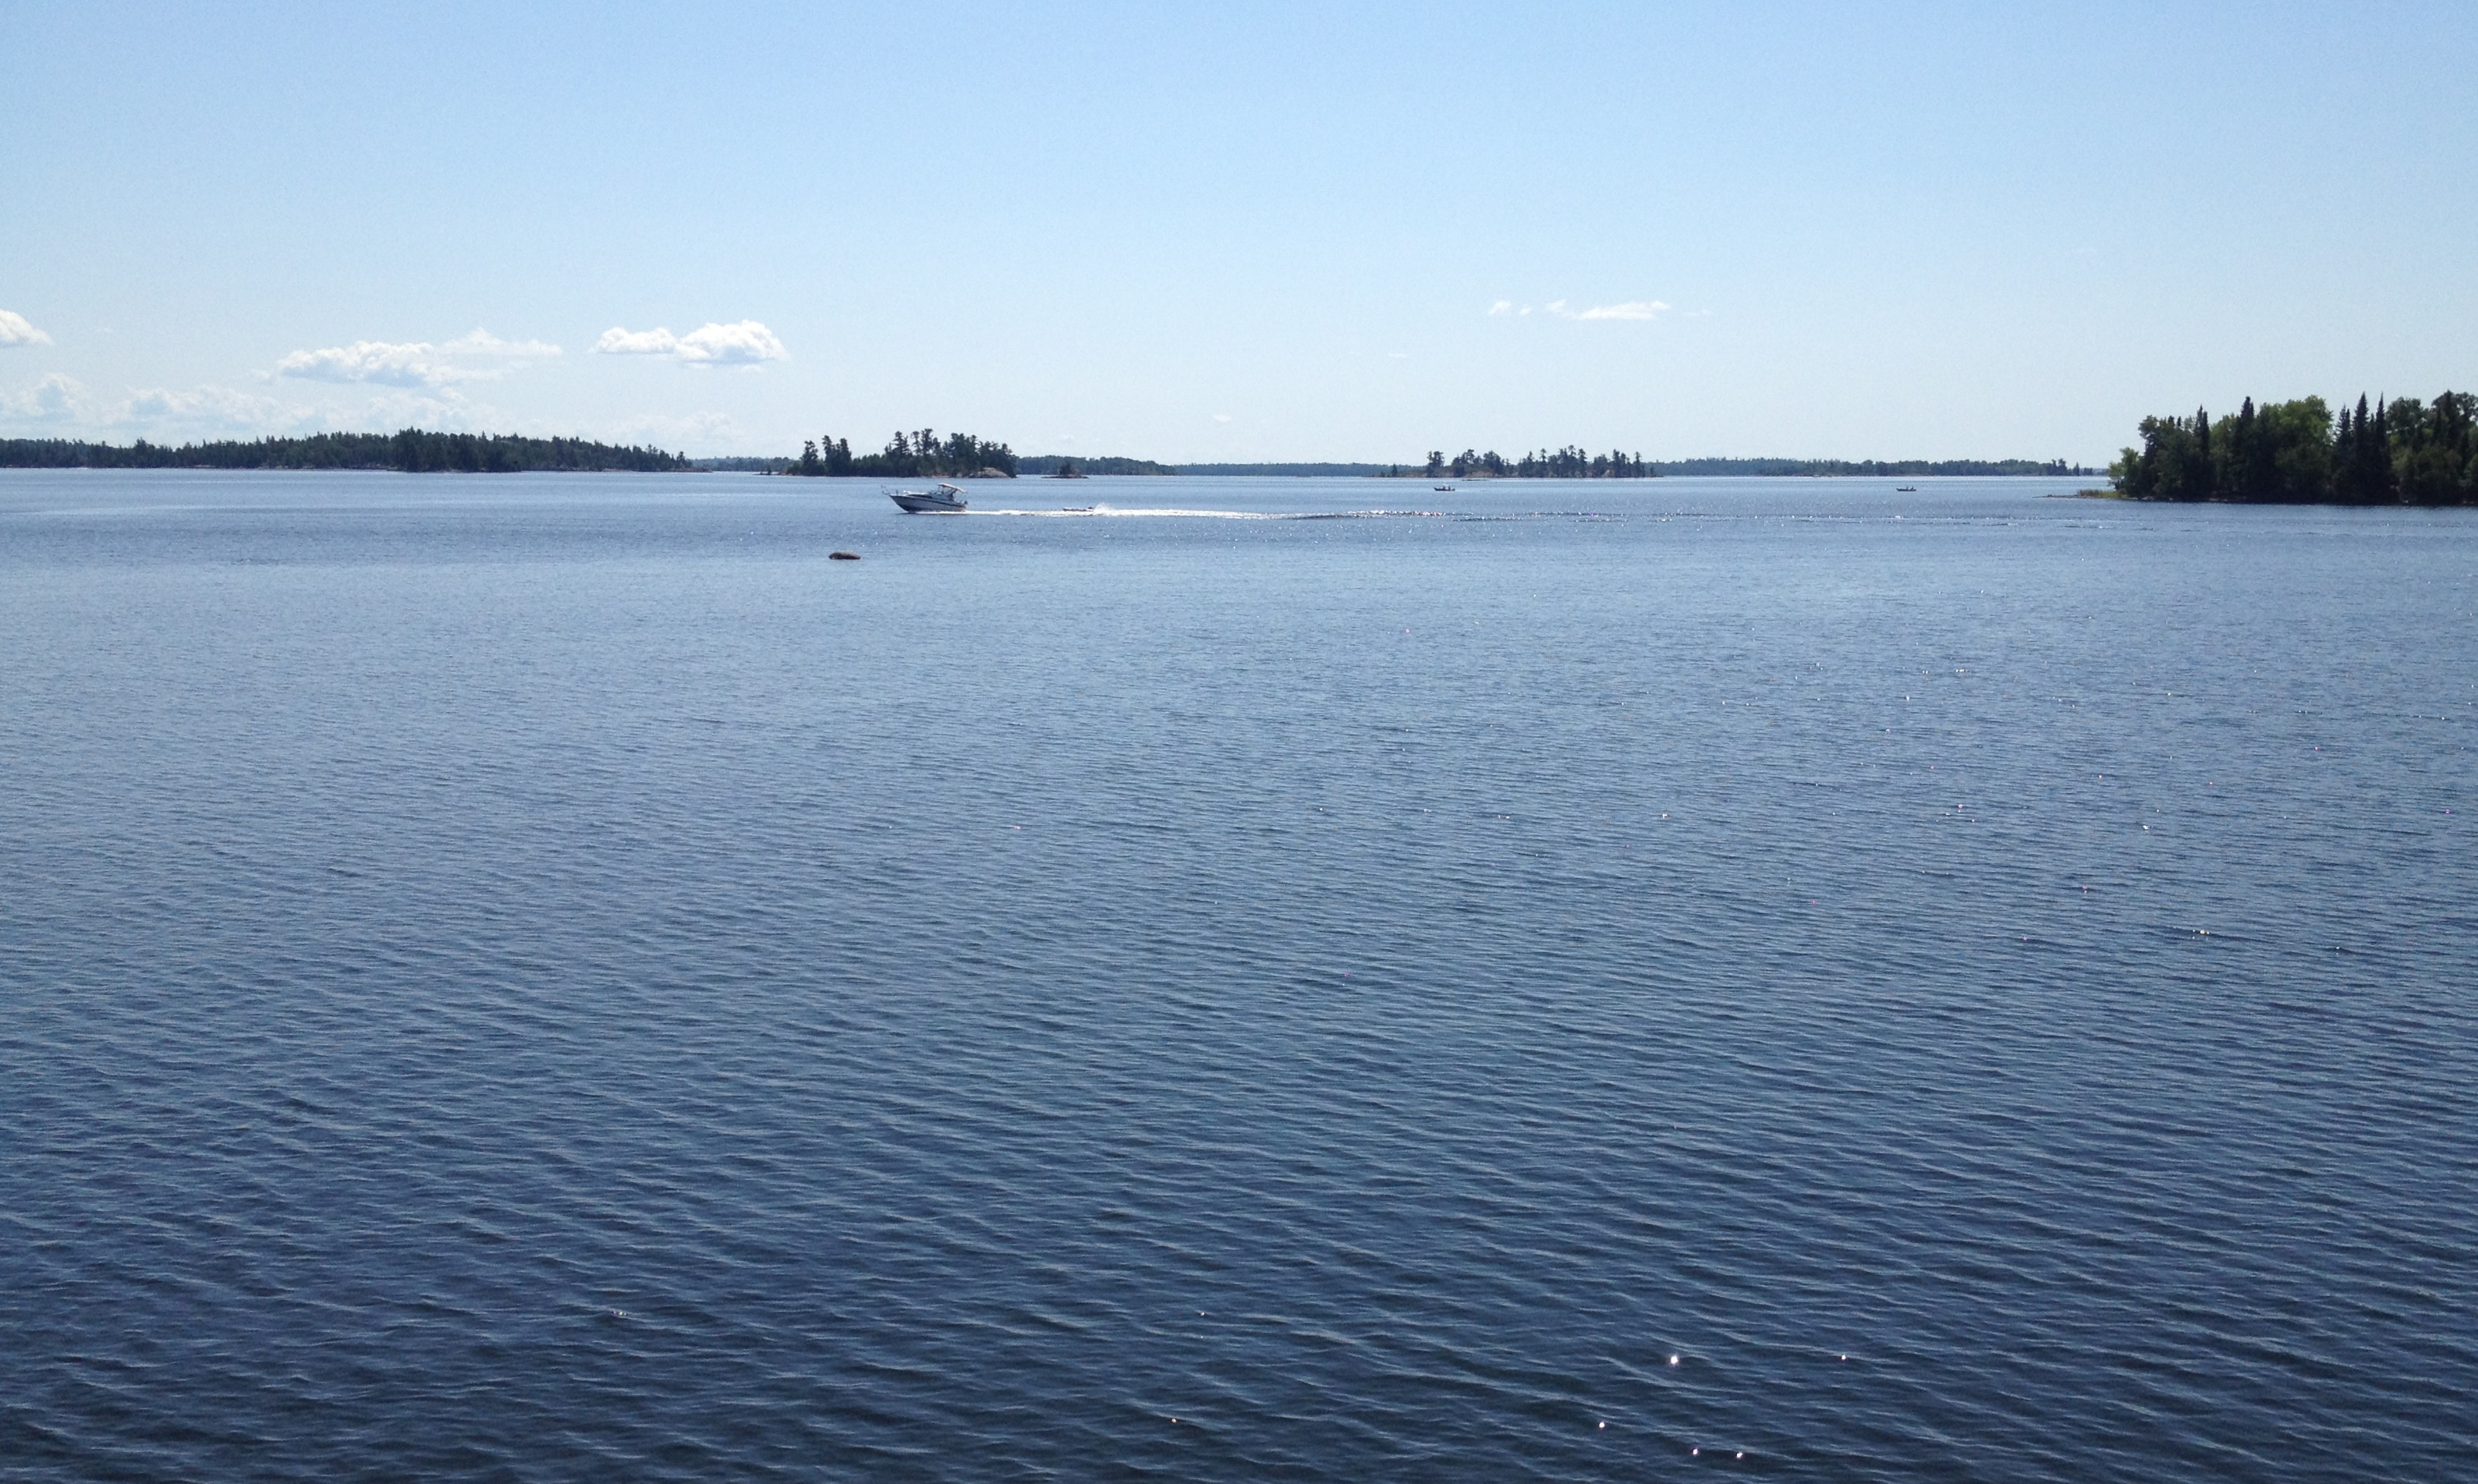 Latest news from houseboat adventures kenora ontario for Lake of the woods ice fishing packages